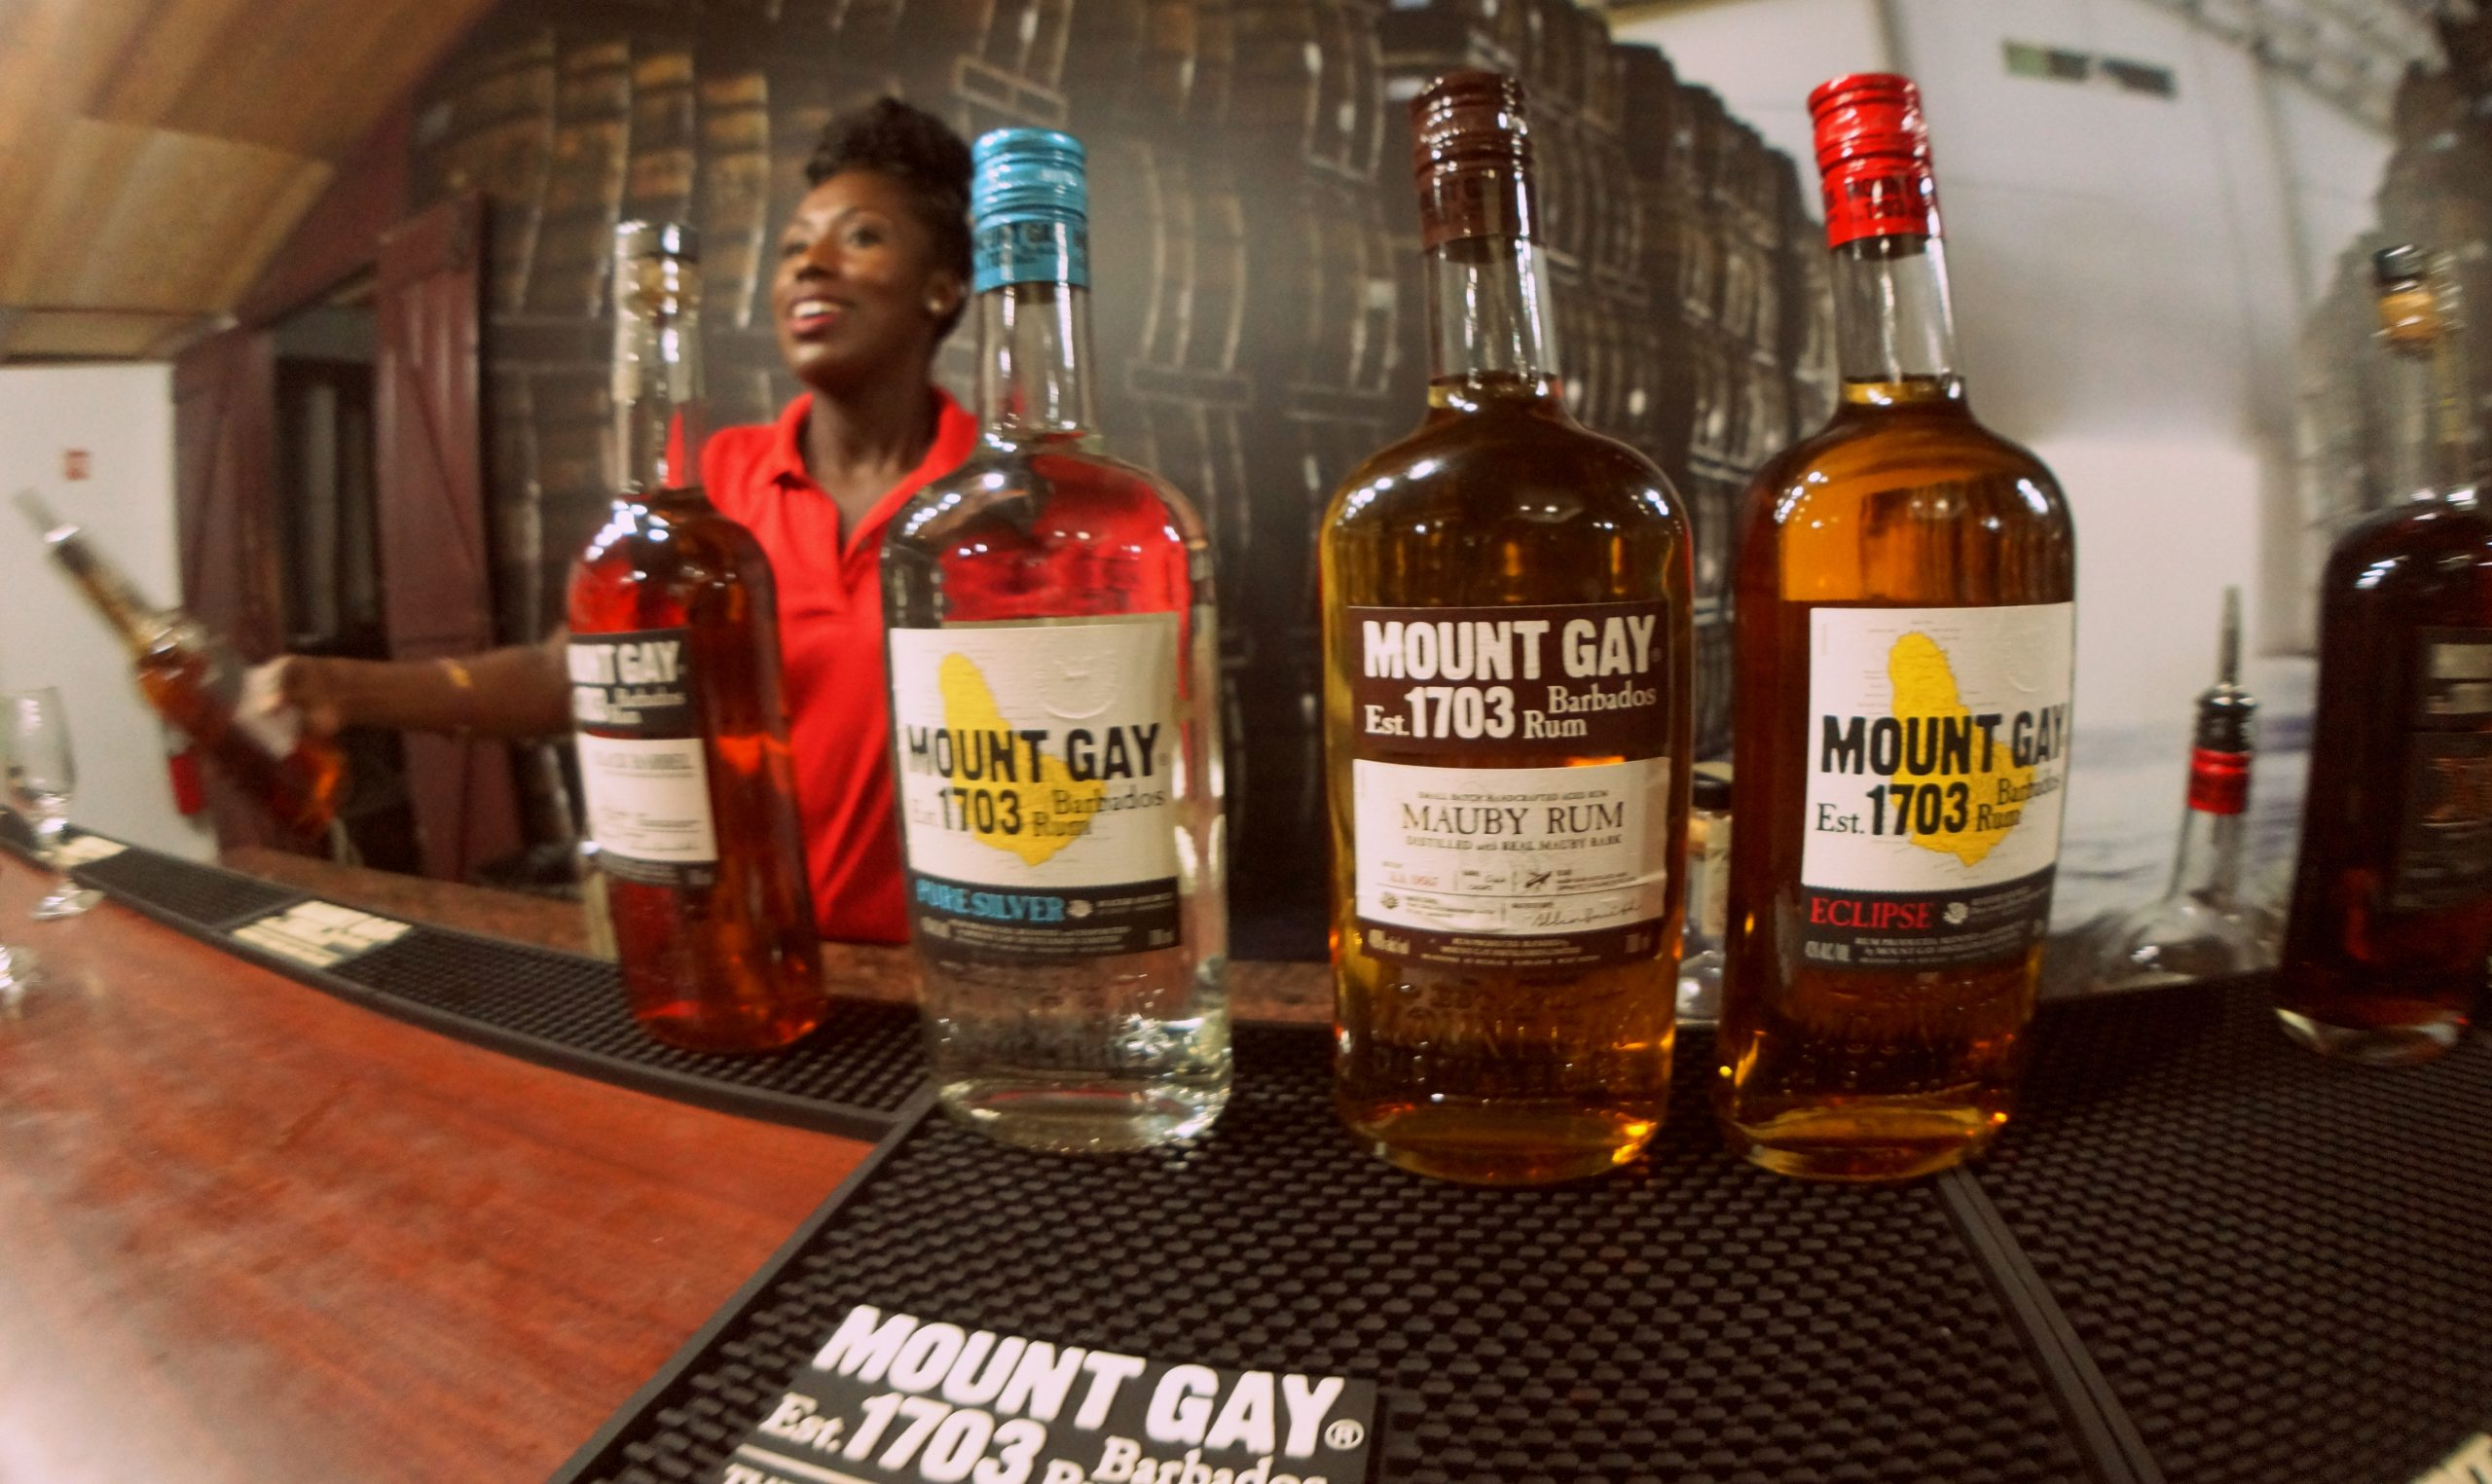 Tasting Room at the Mount Gay Visitors Center in Barbados